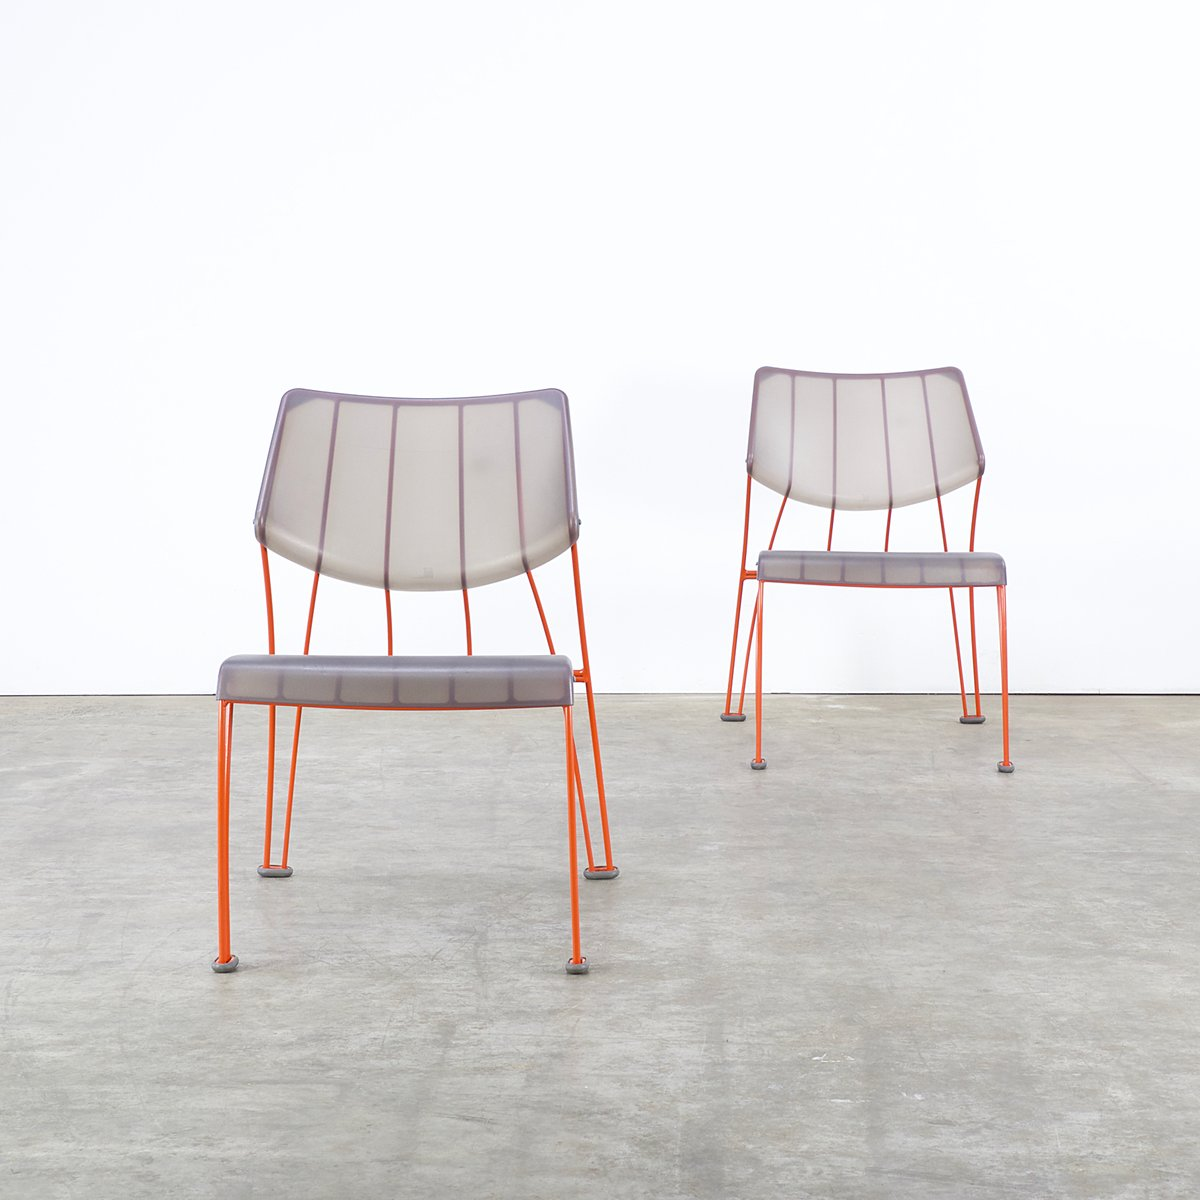 Ps hasslo chairs by monika mulder for ikea 1990s set of 2 for sale at pamono - Sedia trasparente ikea ...